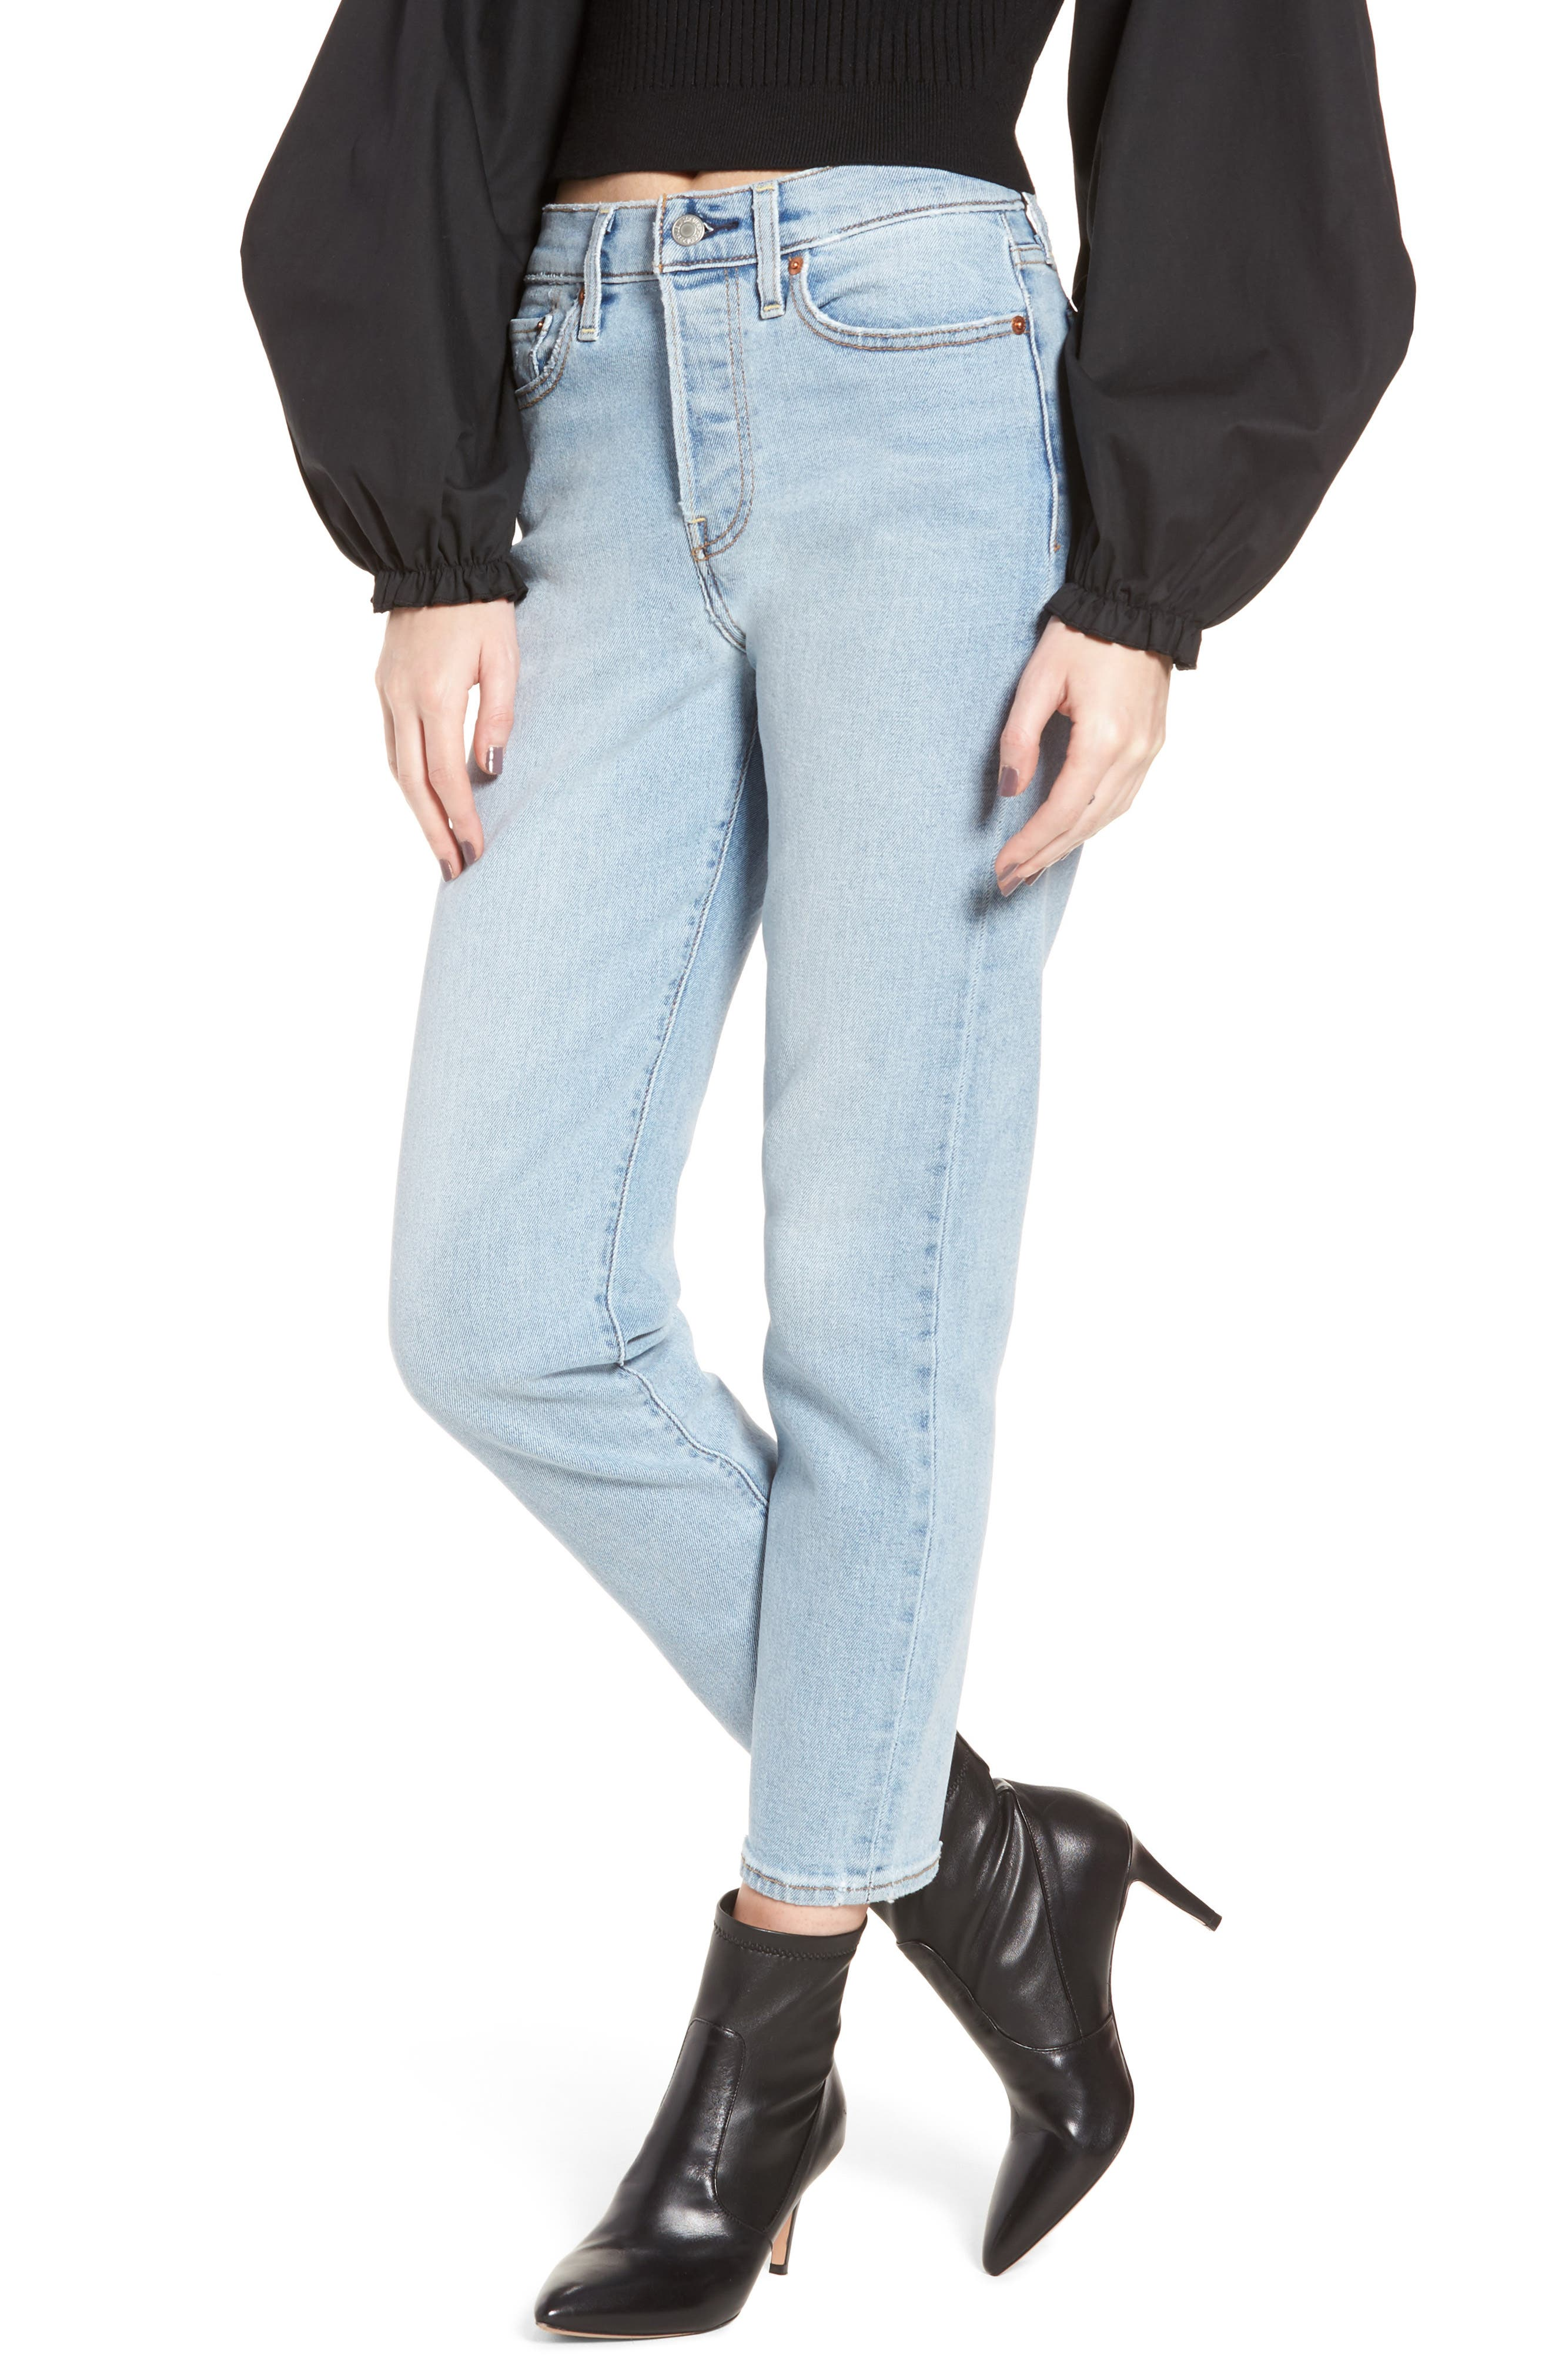 Alternate Image 1 Selected - Levi's® Wedgie Icon Fit High Waist Crop Jeans (Bauhaus Blues)